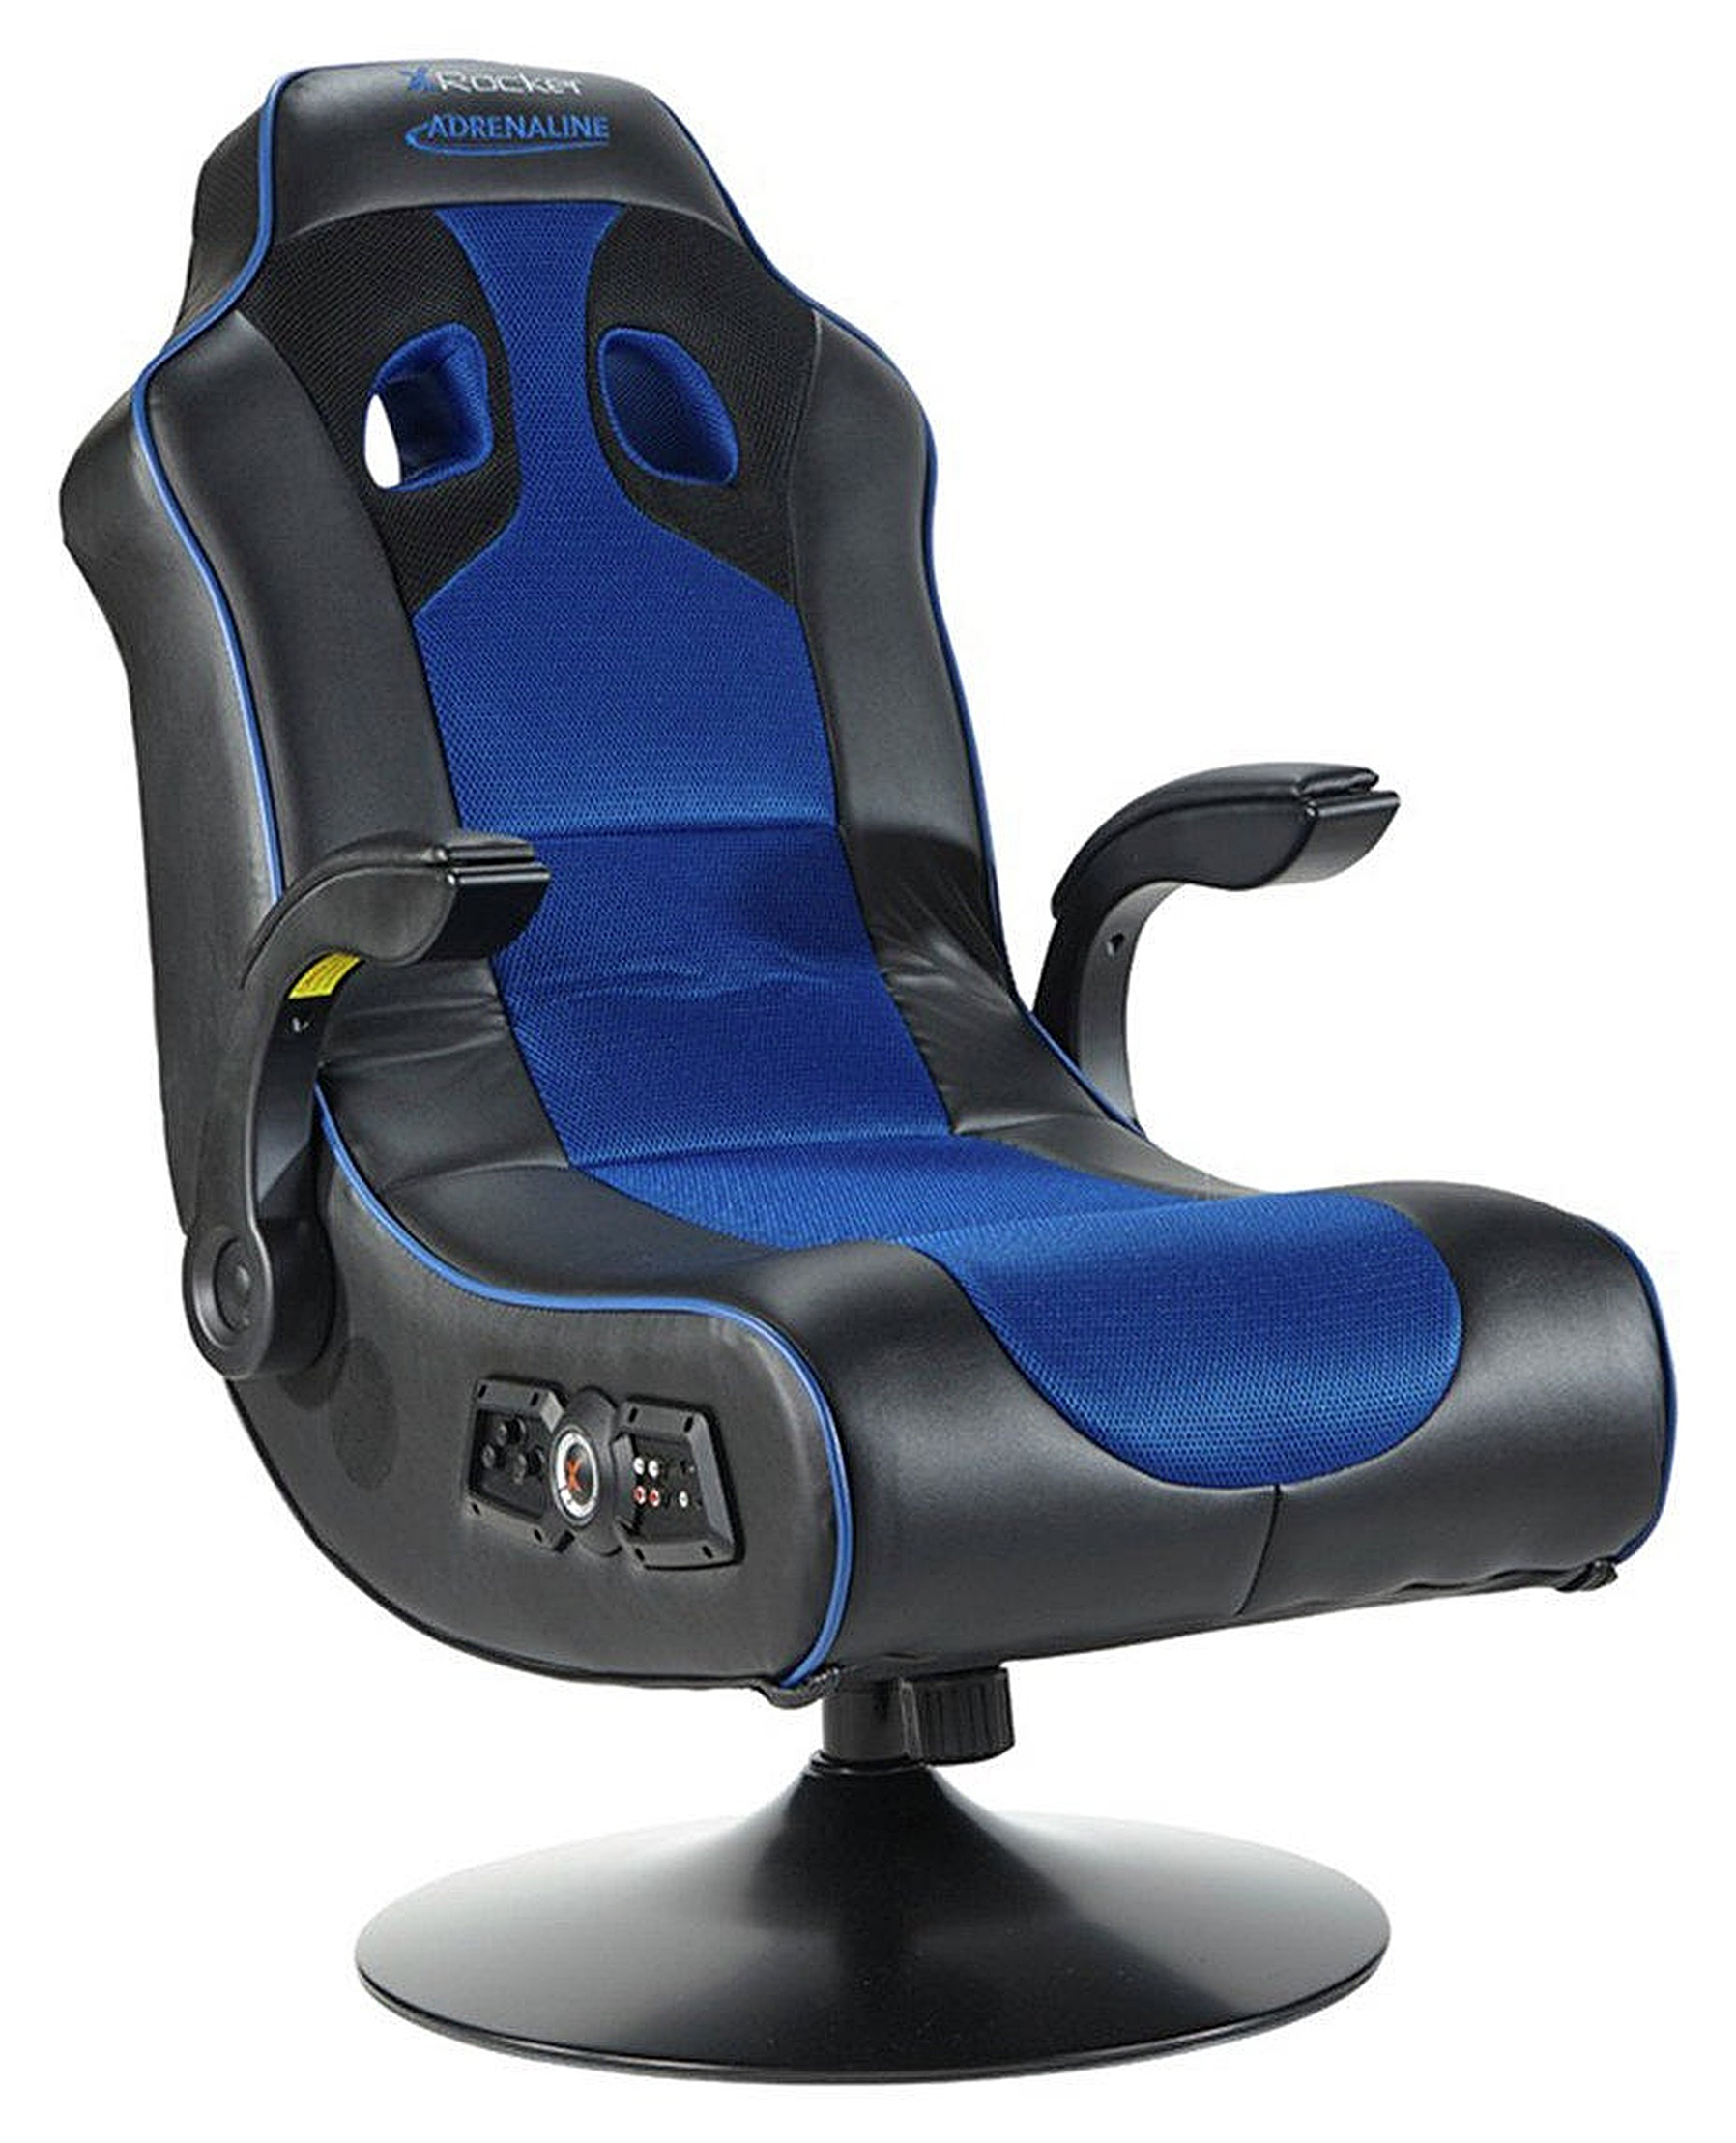 Cloud 9 Gaming Chair Adrenaline Gaming Chair Ps4 Xbox One